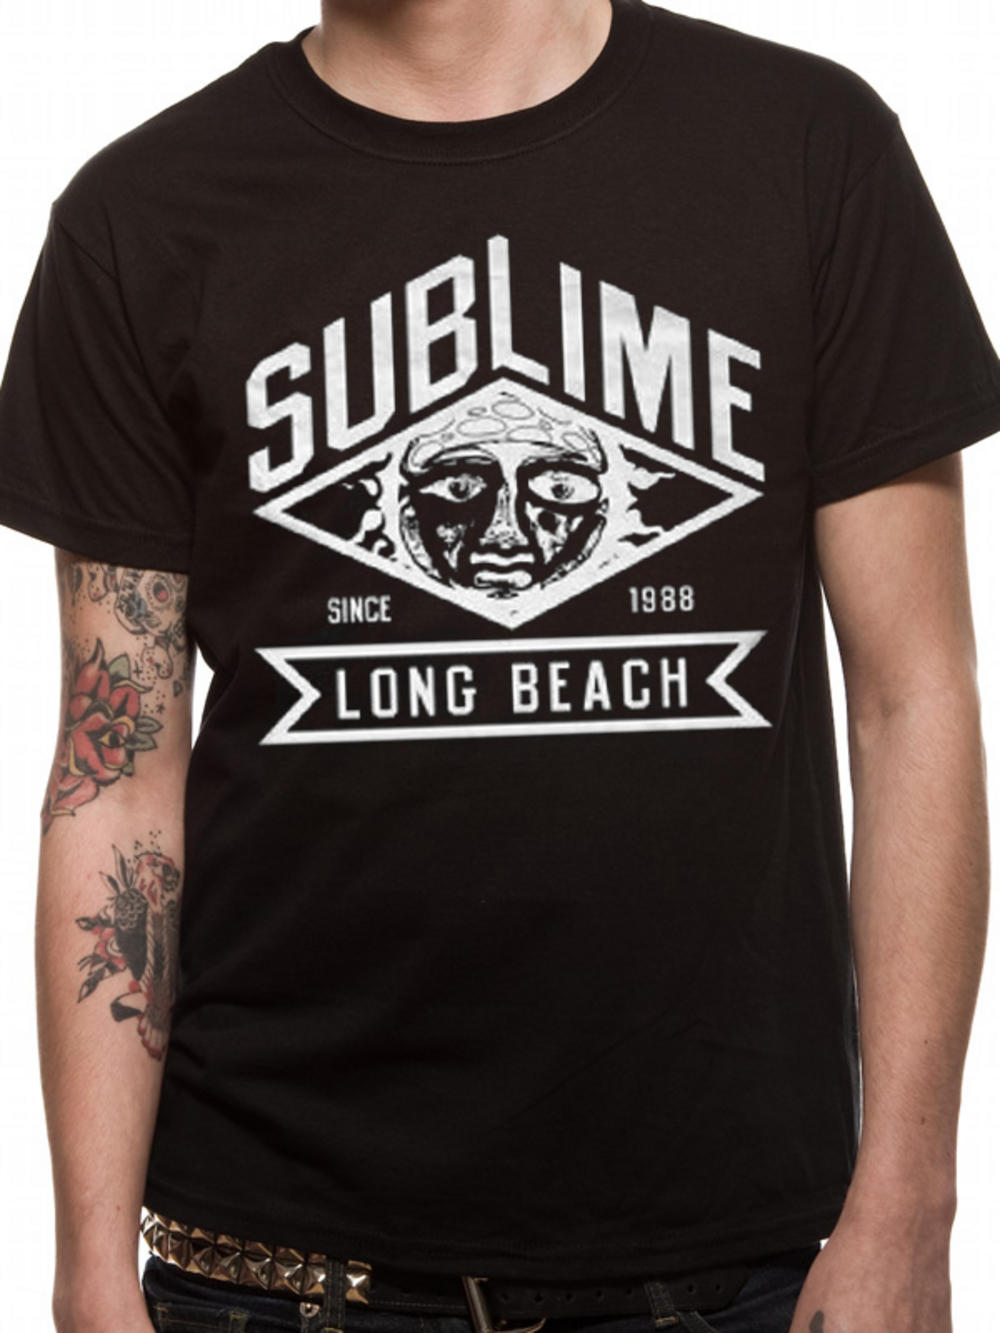 Sublime (Long Beach) T-Shirt